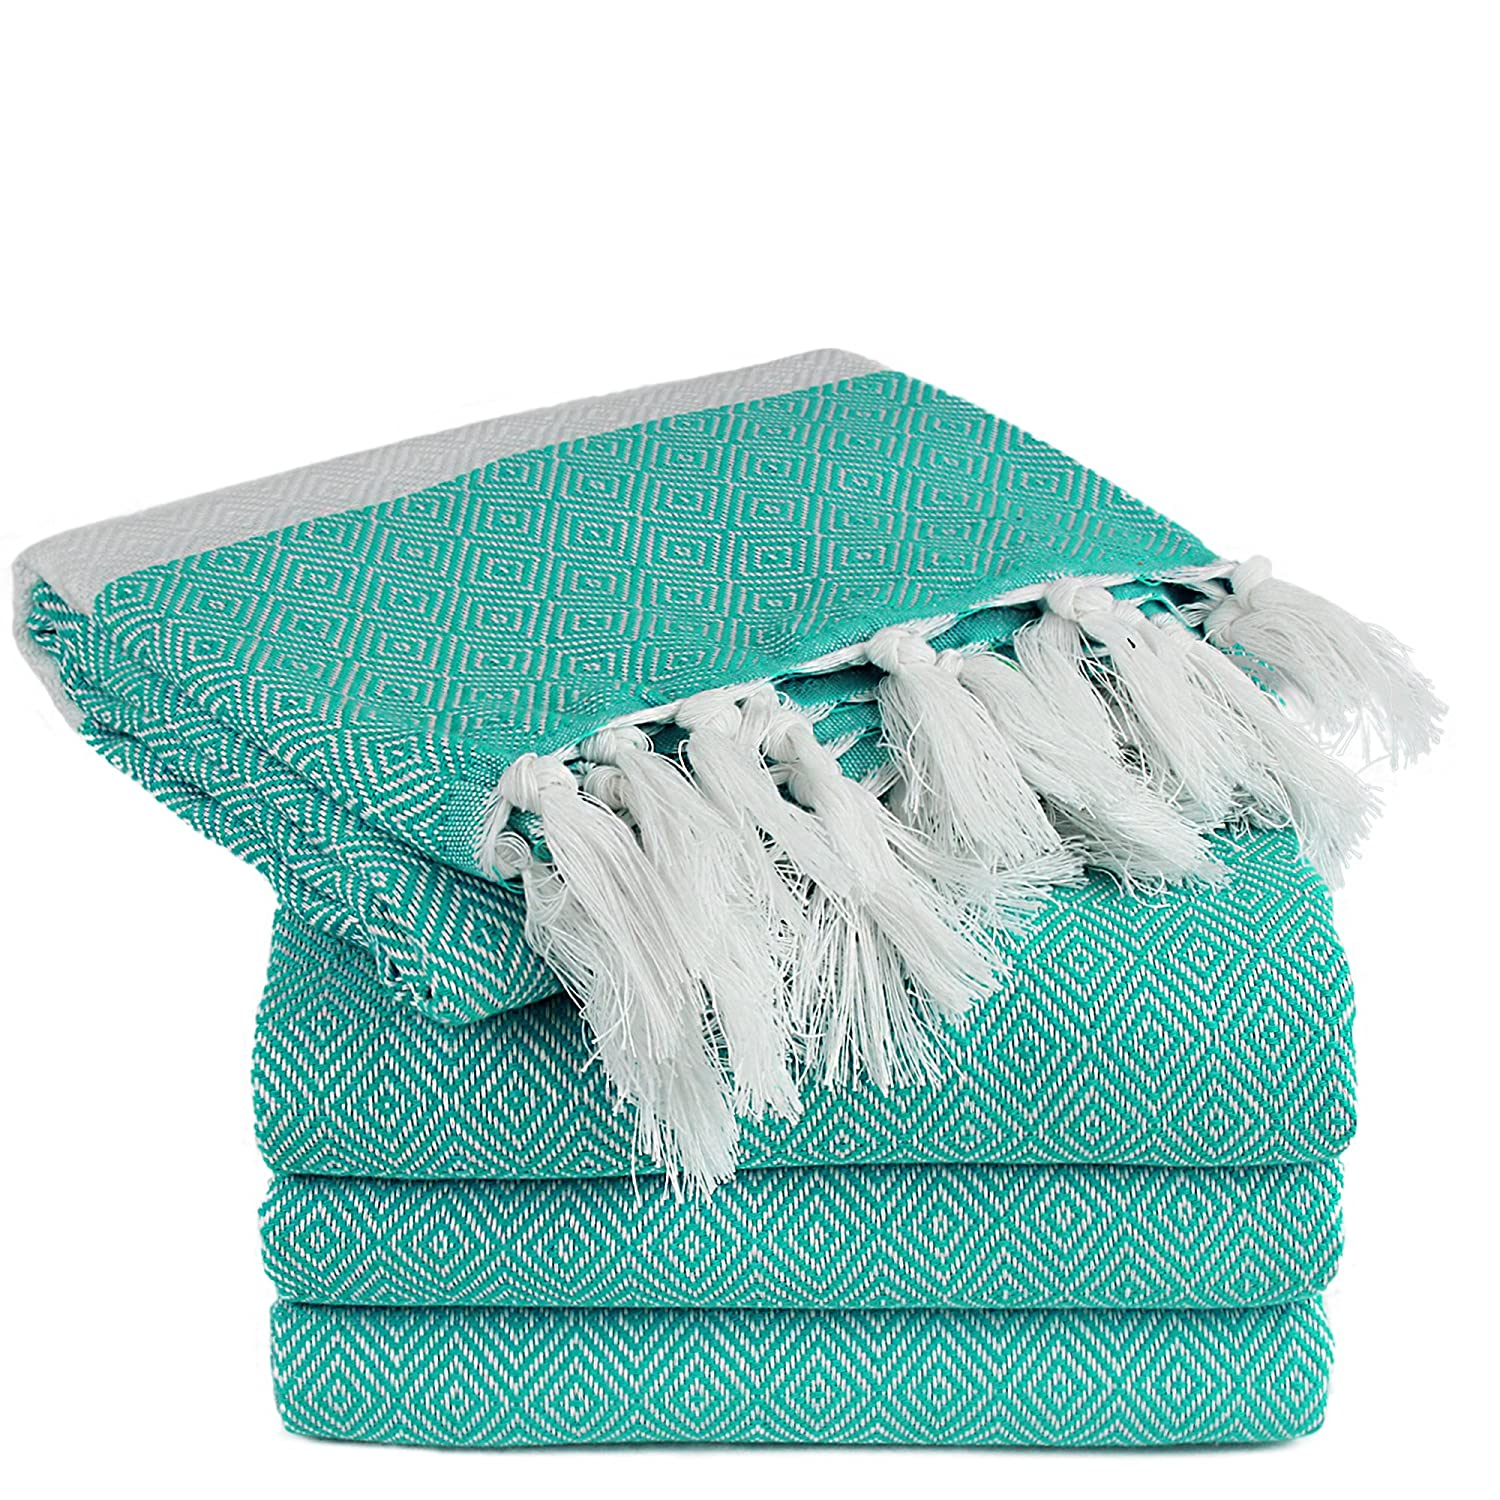 TURKUOISE TURKISH TOWEL Turkuoise Peshtemal - Genuine Flat Woven Turkish Towel - Pareo - Sarong - Picnic Blanket - Yoga Mat - Fouta (100% Cotton) (Diamond-Set of 4(Aqua))